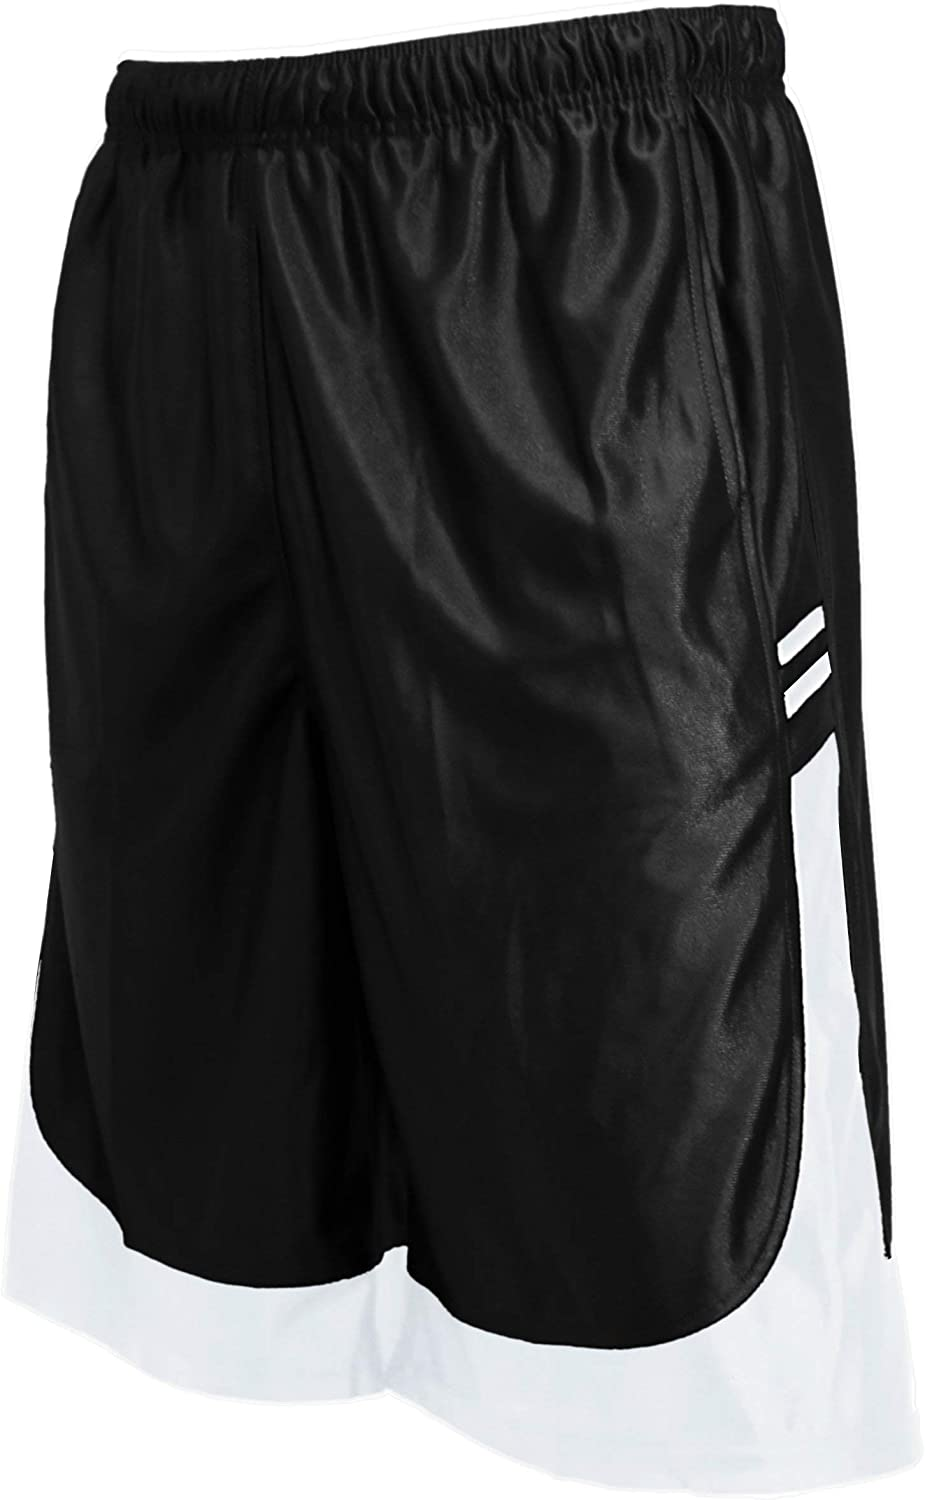 OLLIE ARNES Mens Athletic Gym Workout Shorts with Pockets in Packs or Single, Mesh or Dazzle Athletic Basketball Shorts